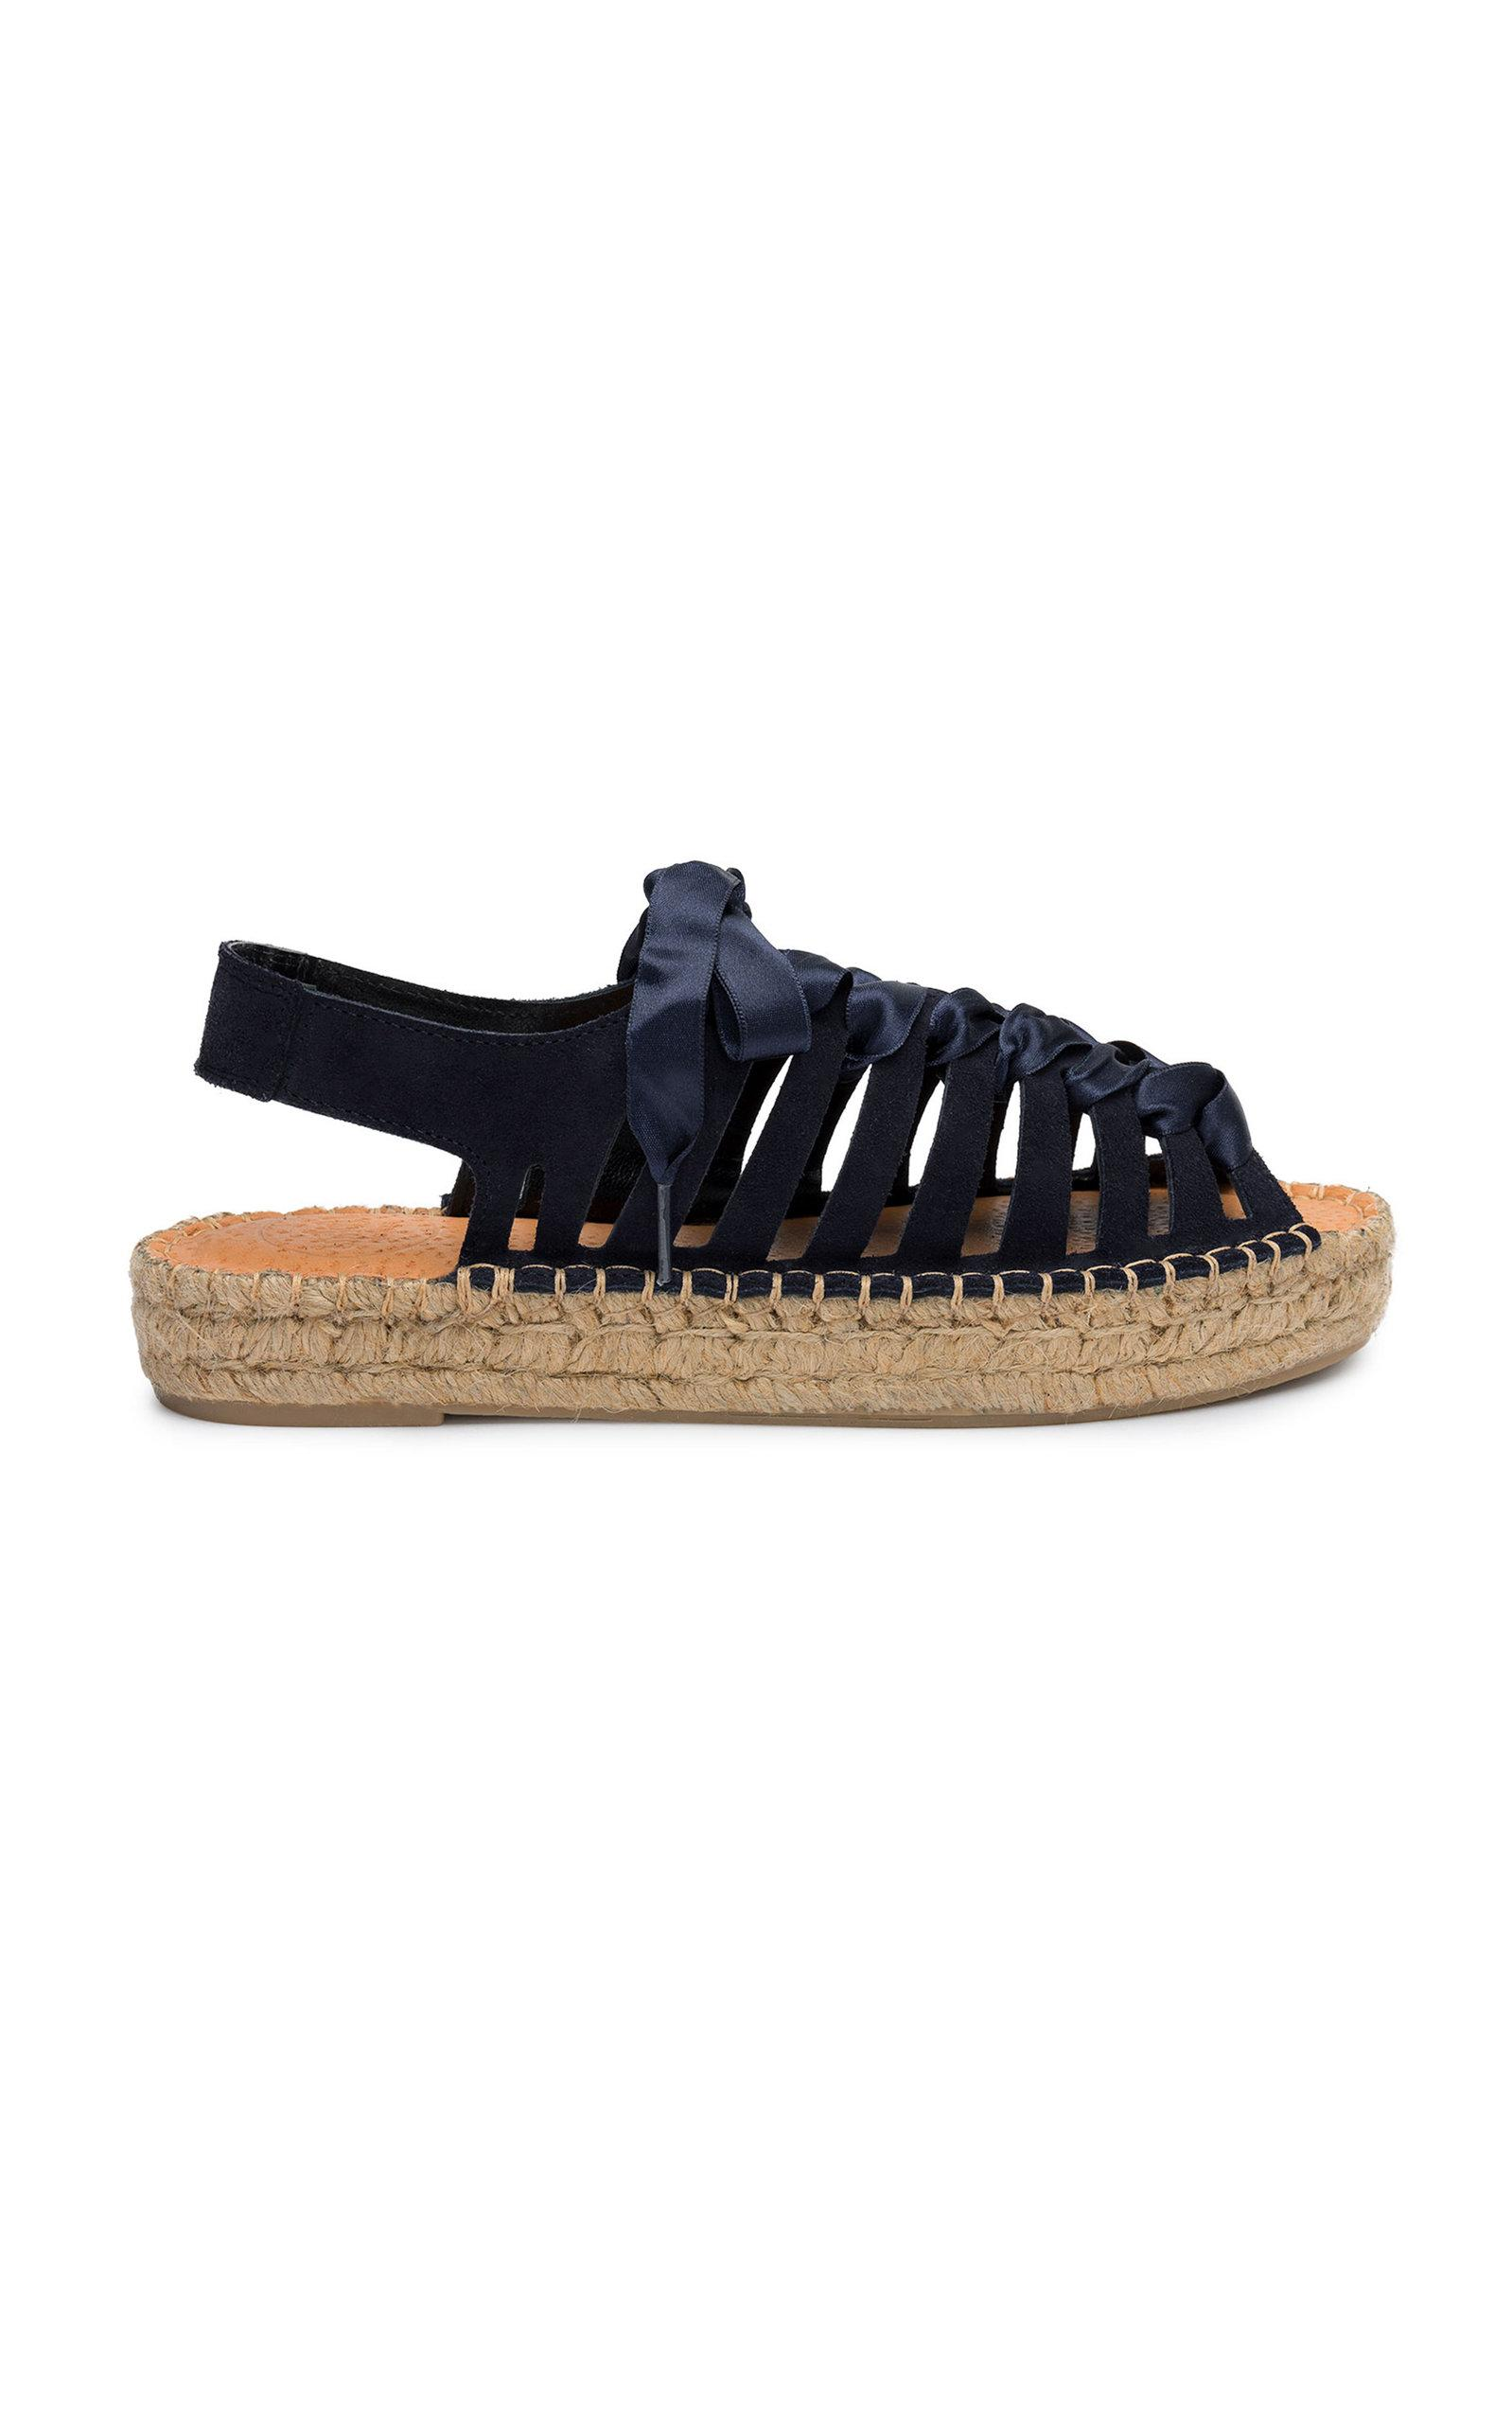 4a9002cc4823 Alohas Sandals Formentera Sandal In Navy